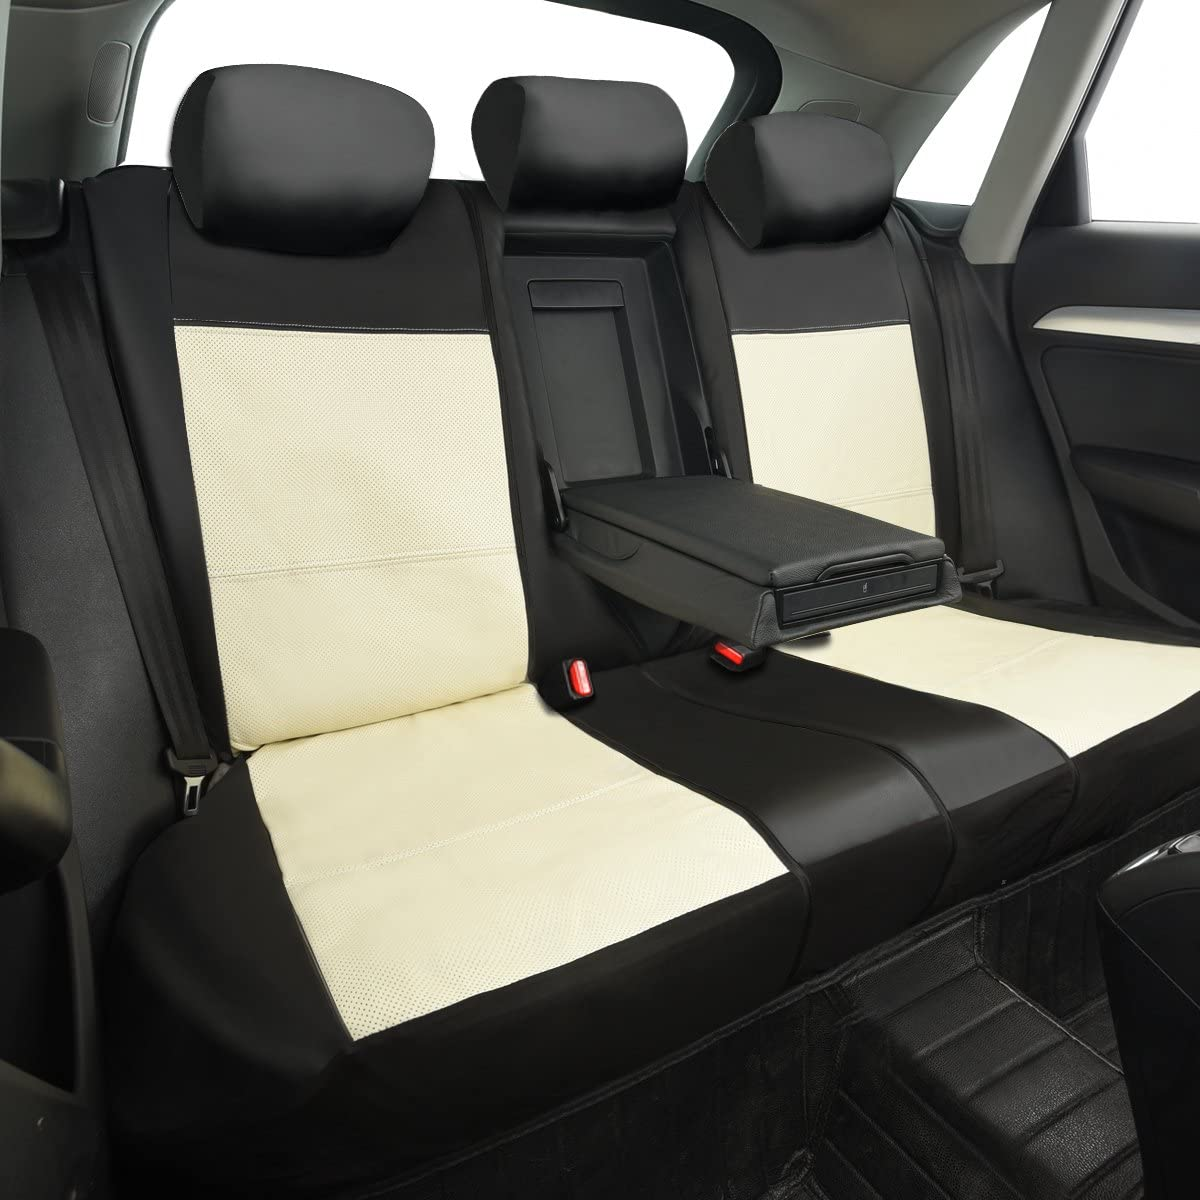 NEW ARRIVAL CAR PASS Skyline PU LEATHER CAR SEAT COVERS UNIVERSAL FIT FOR CARS,SUV,VEHICLES 11PCS, Black With Gray